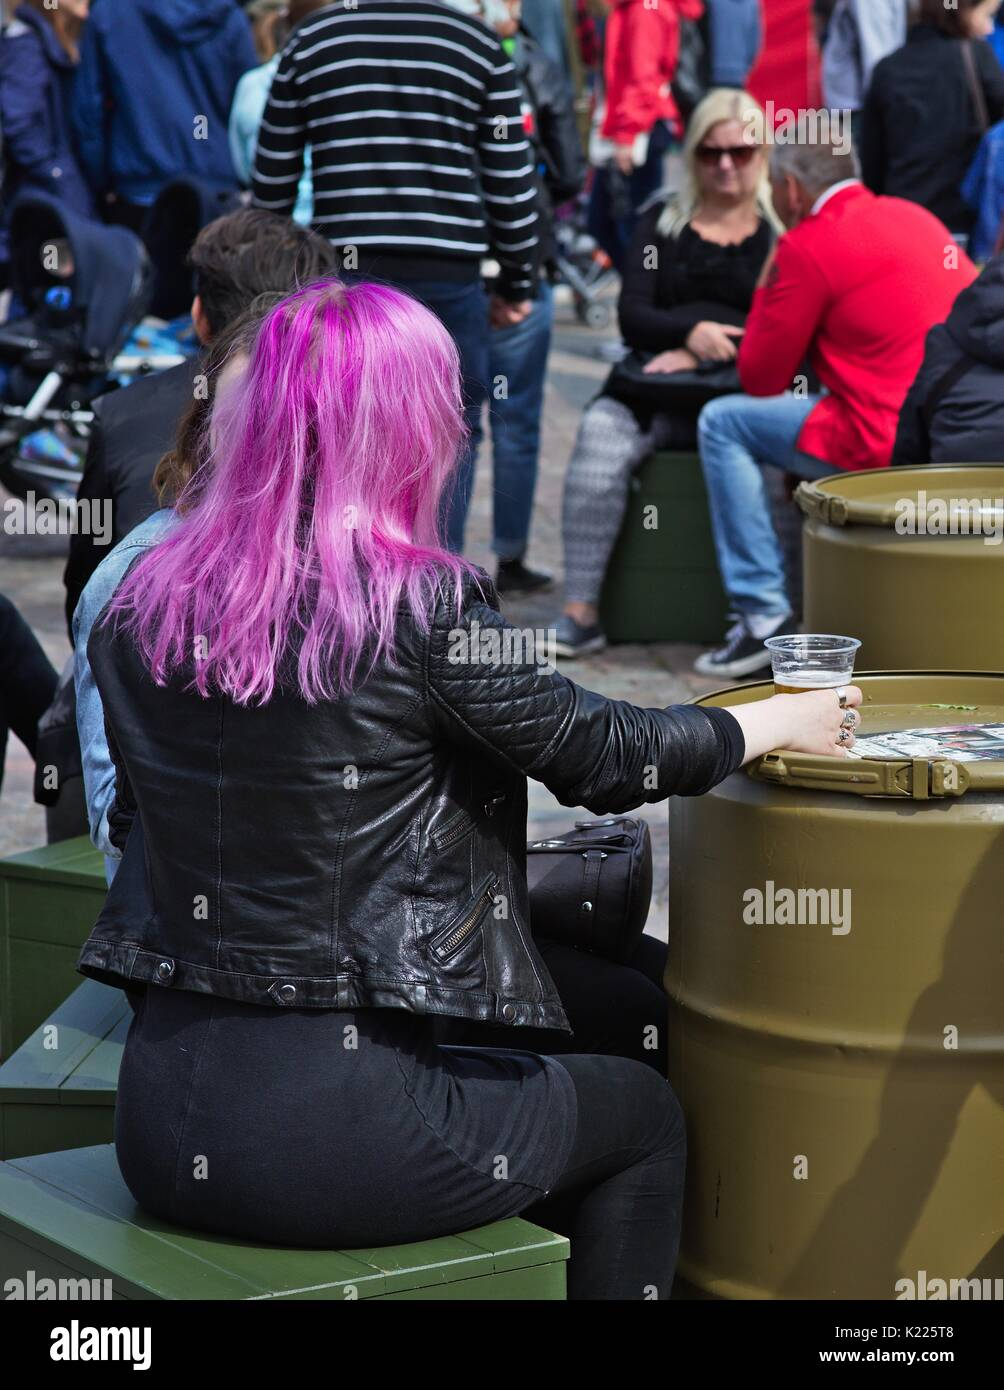 Woman with pink hair, sitting and holding beer glass on barrel table - Stock Image